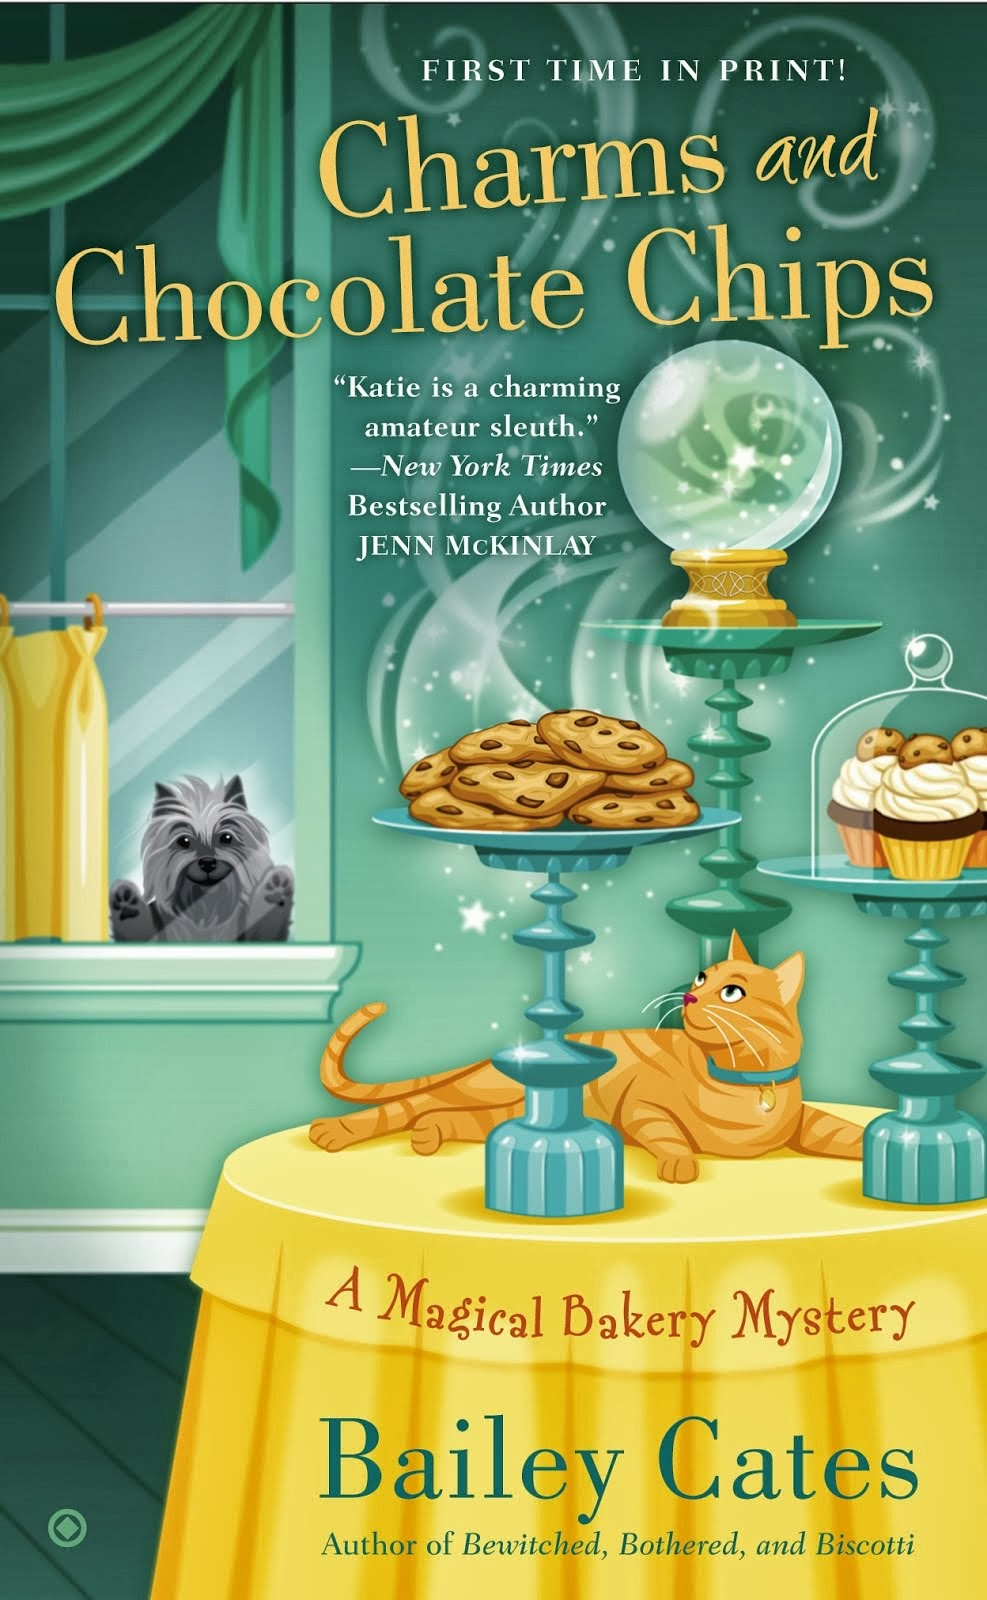 Magical Bakery Mystery #3 - Pre-order now!